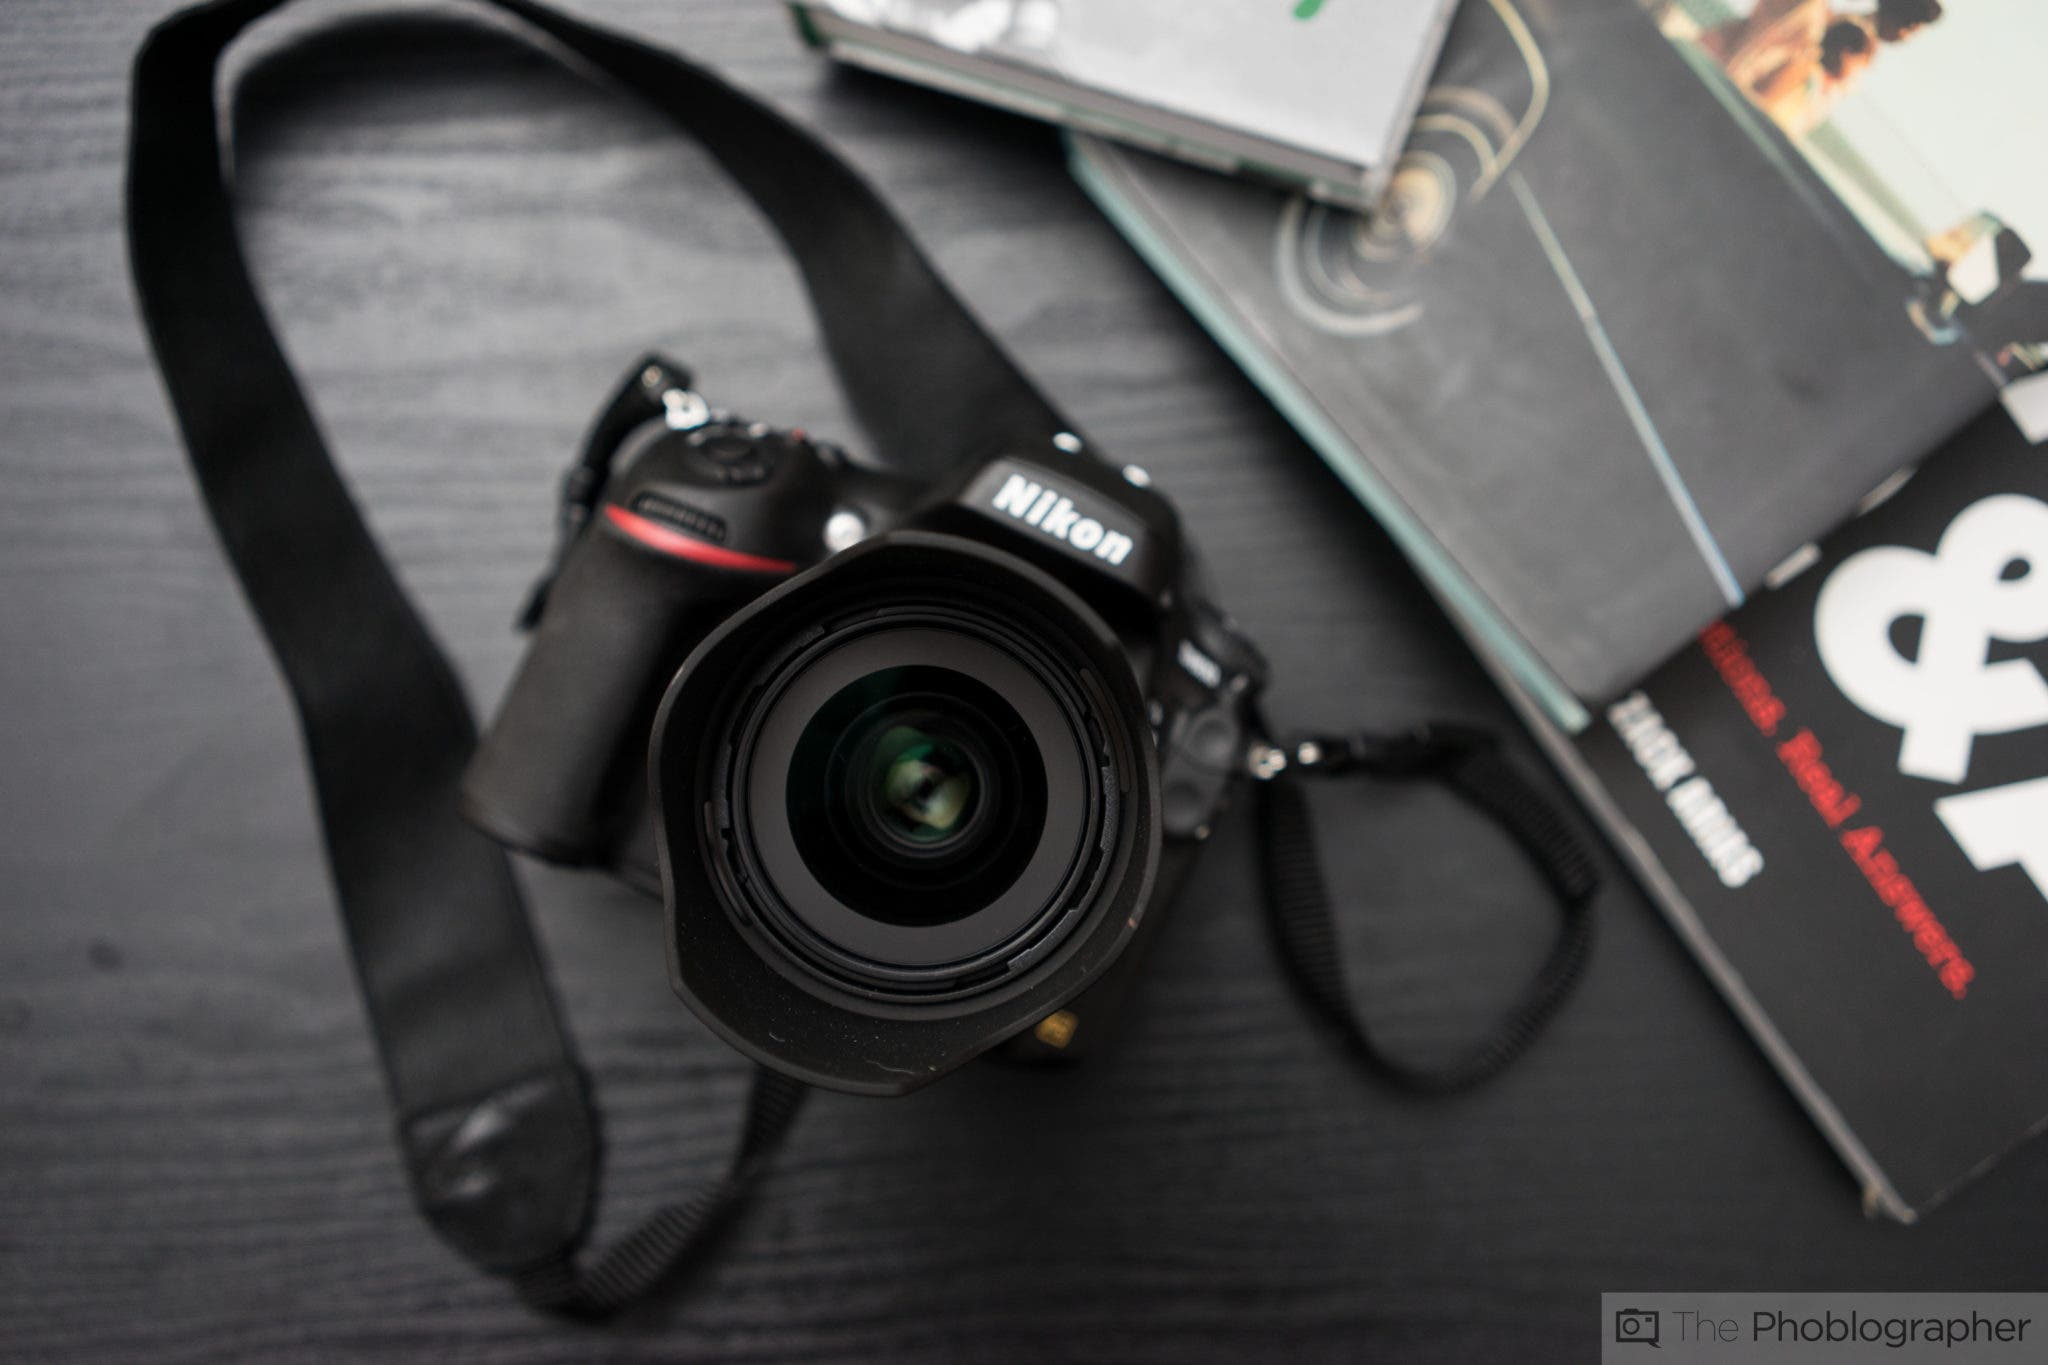 DxOMark: Nikon 35mm f1.8 G Beats the 35mm f1.4 G in Sharpness